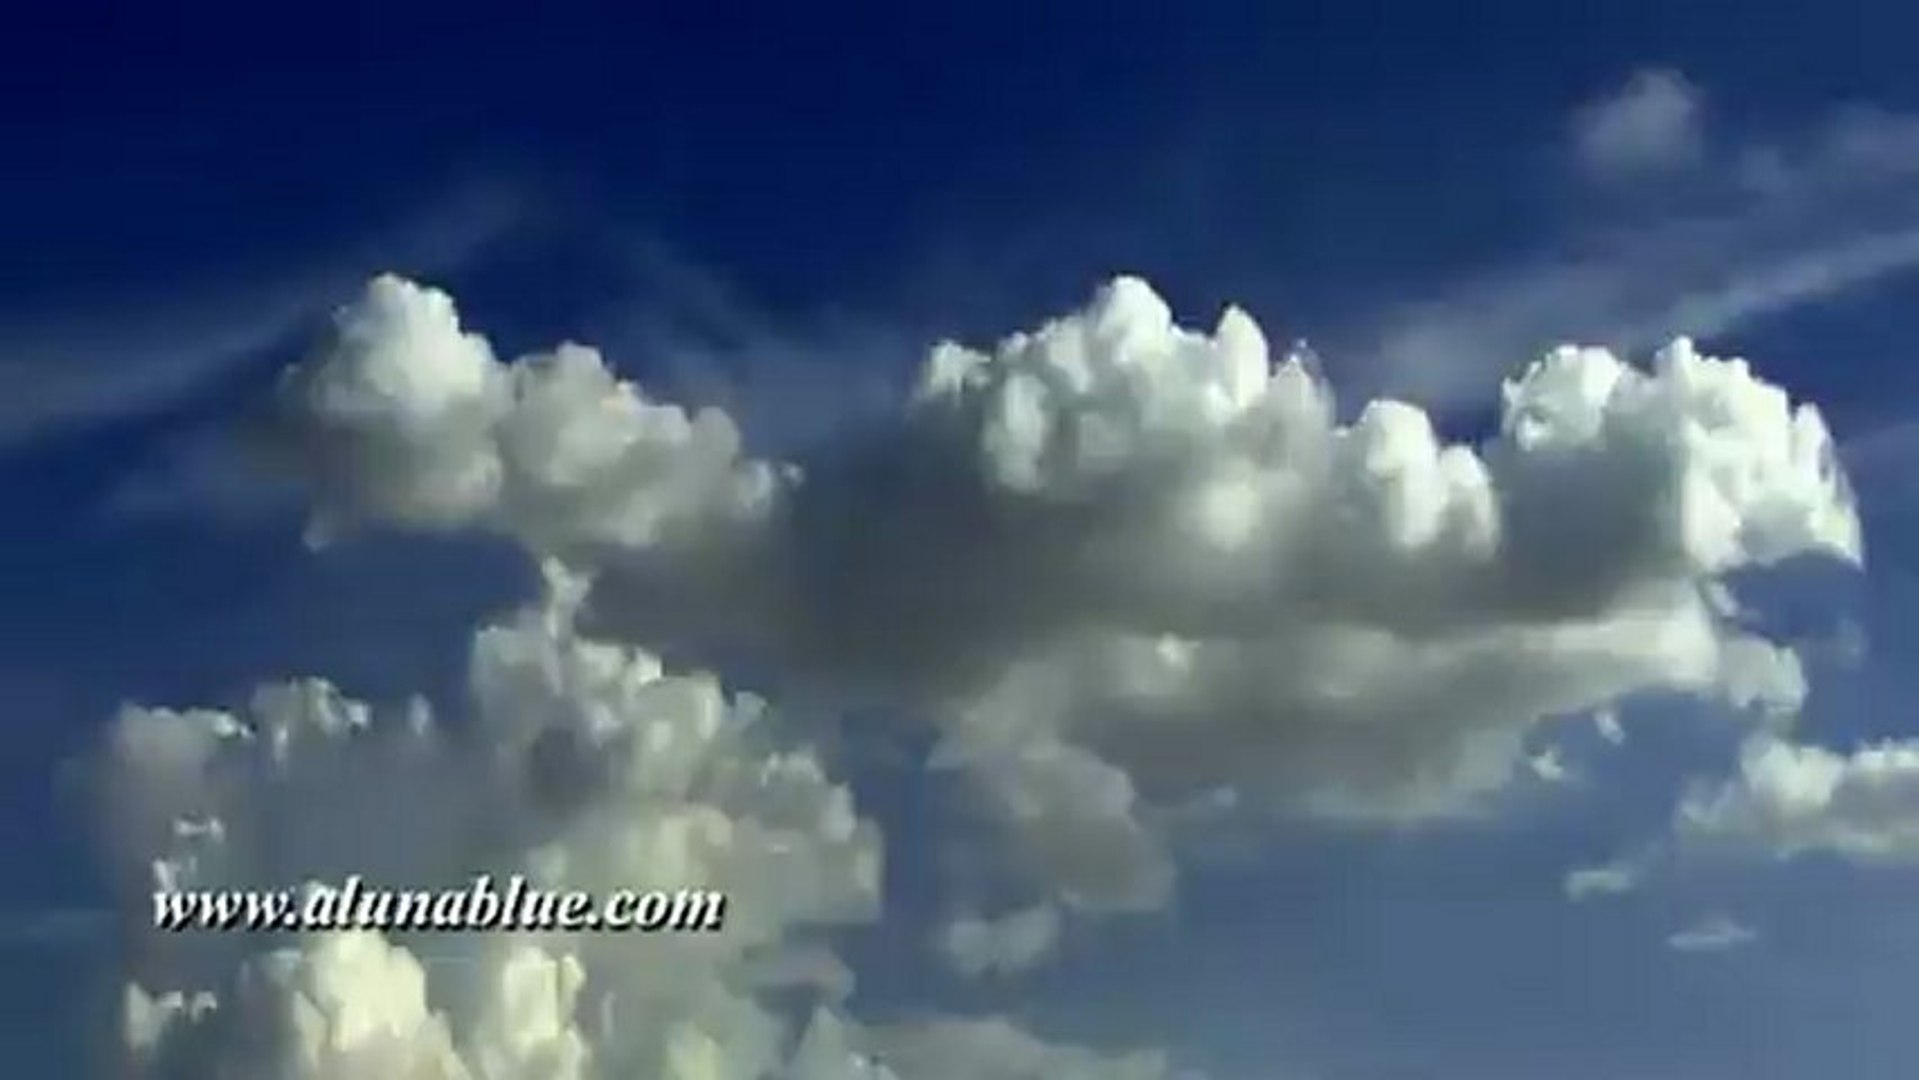 Cloud Video Backgrounds - Fantastic Clouds 01 clip 04 - Stock Video - Stock Footage